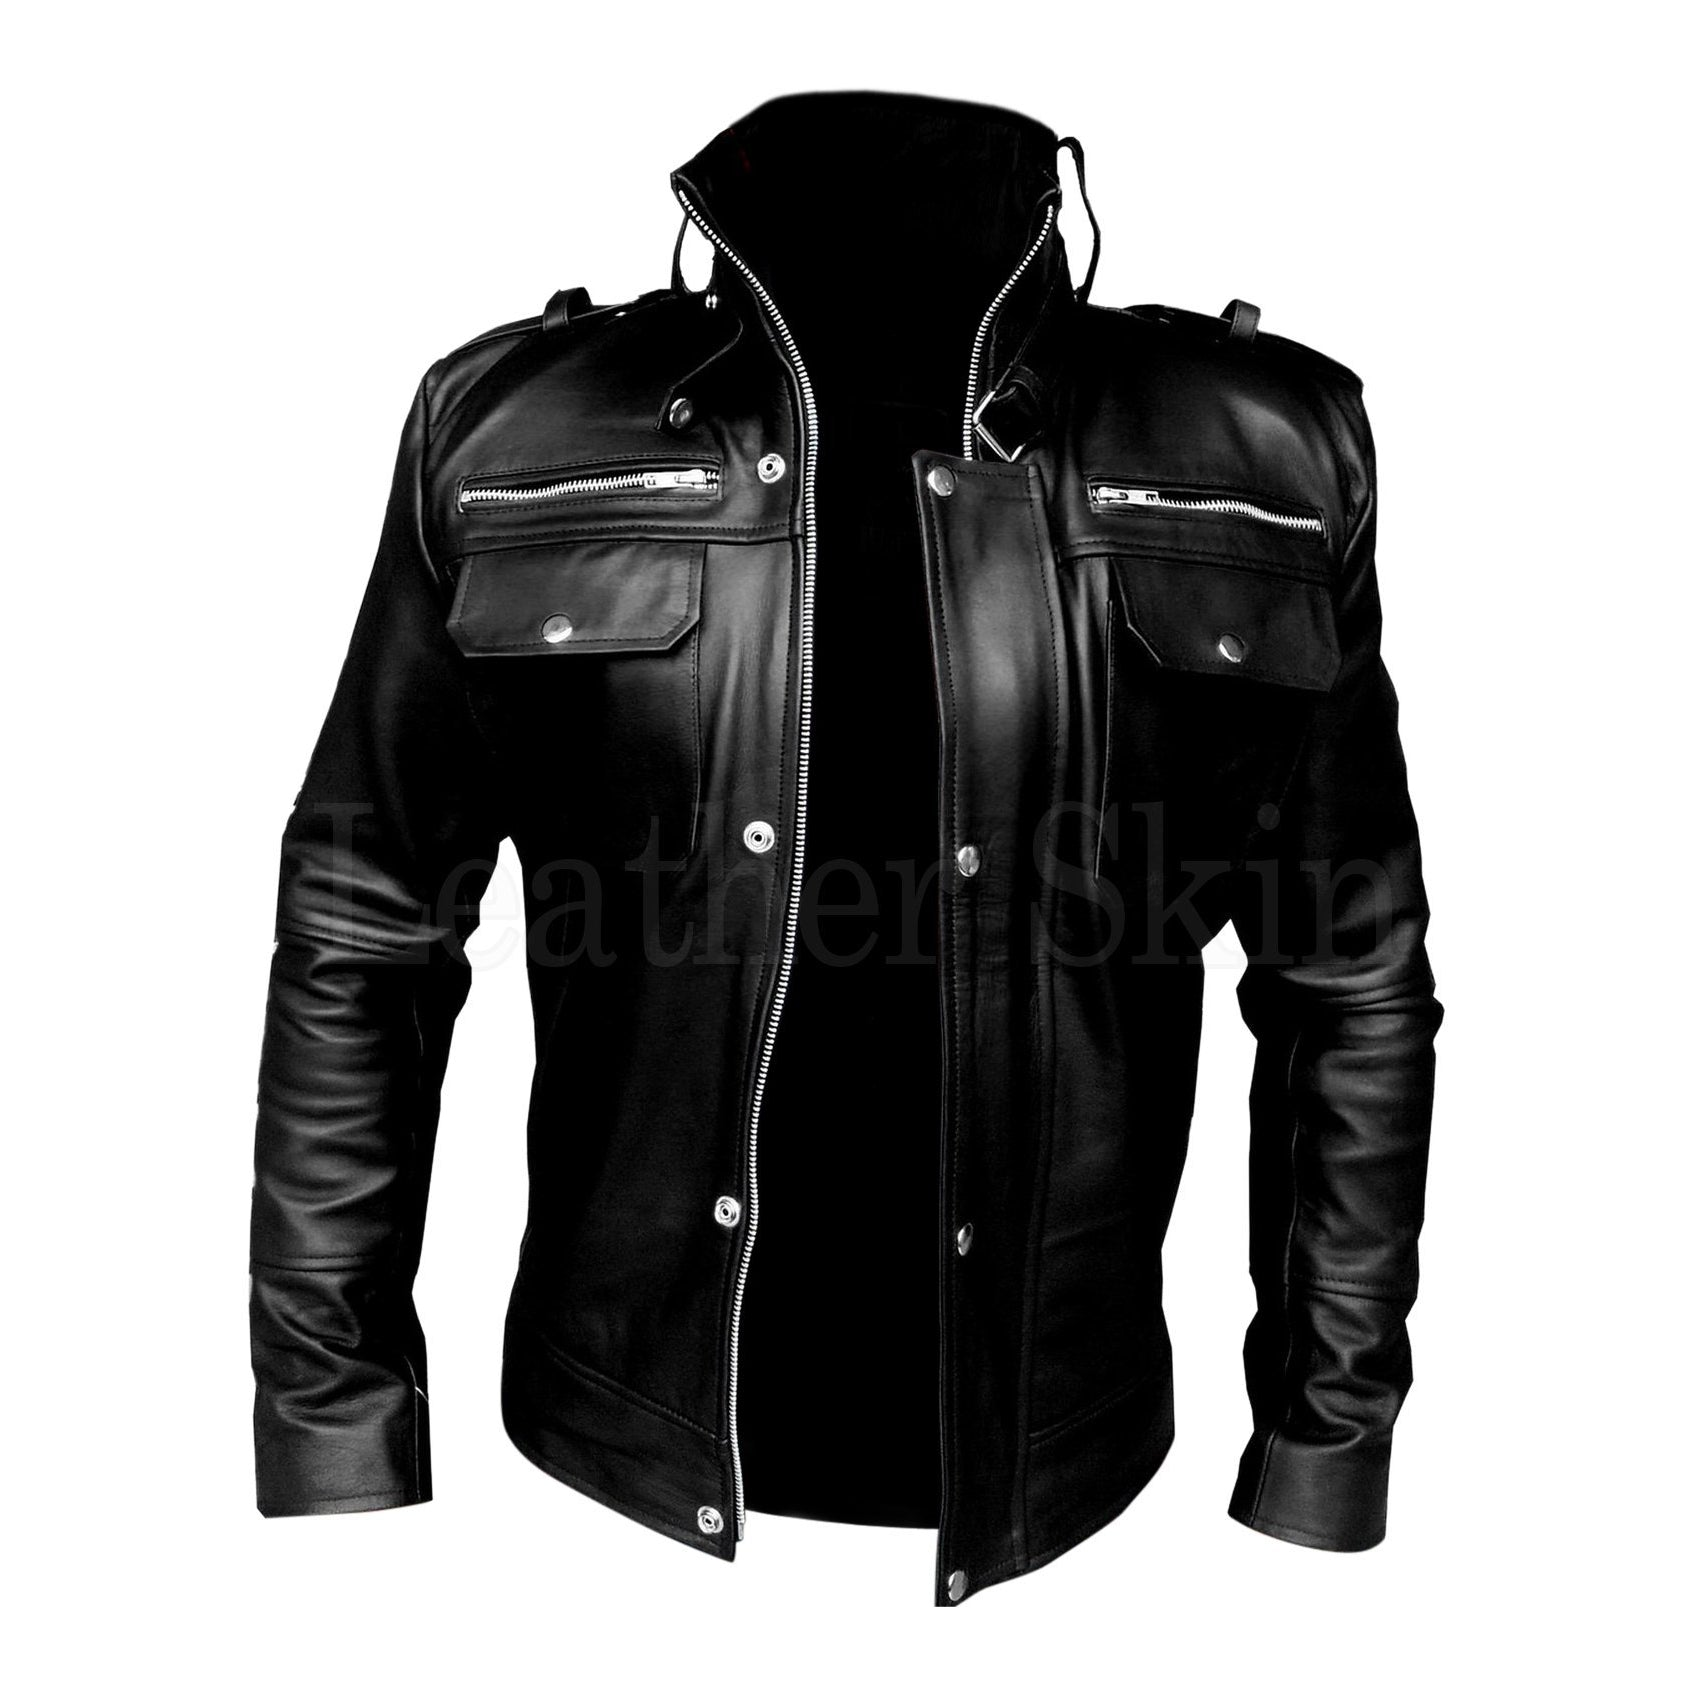 Men Black Genuine Leather Jacket with Front Pockets